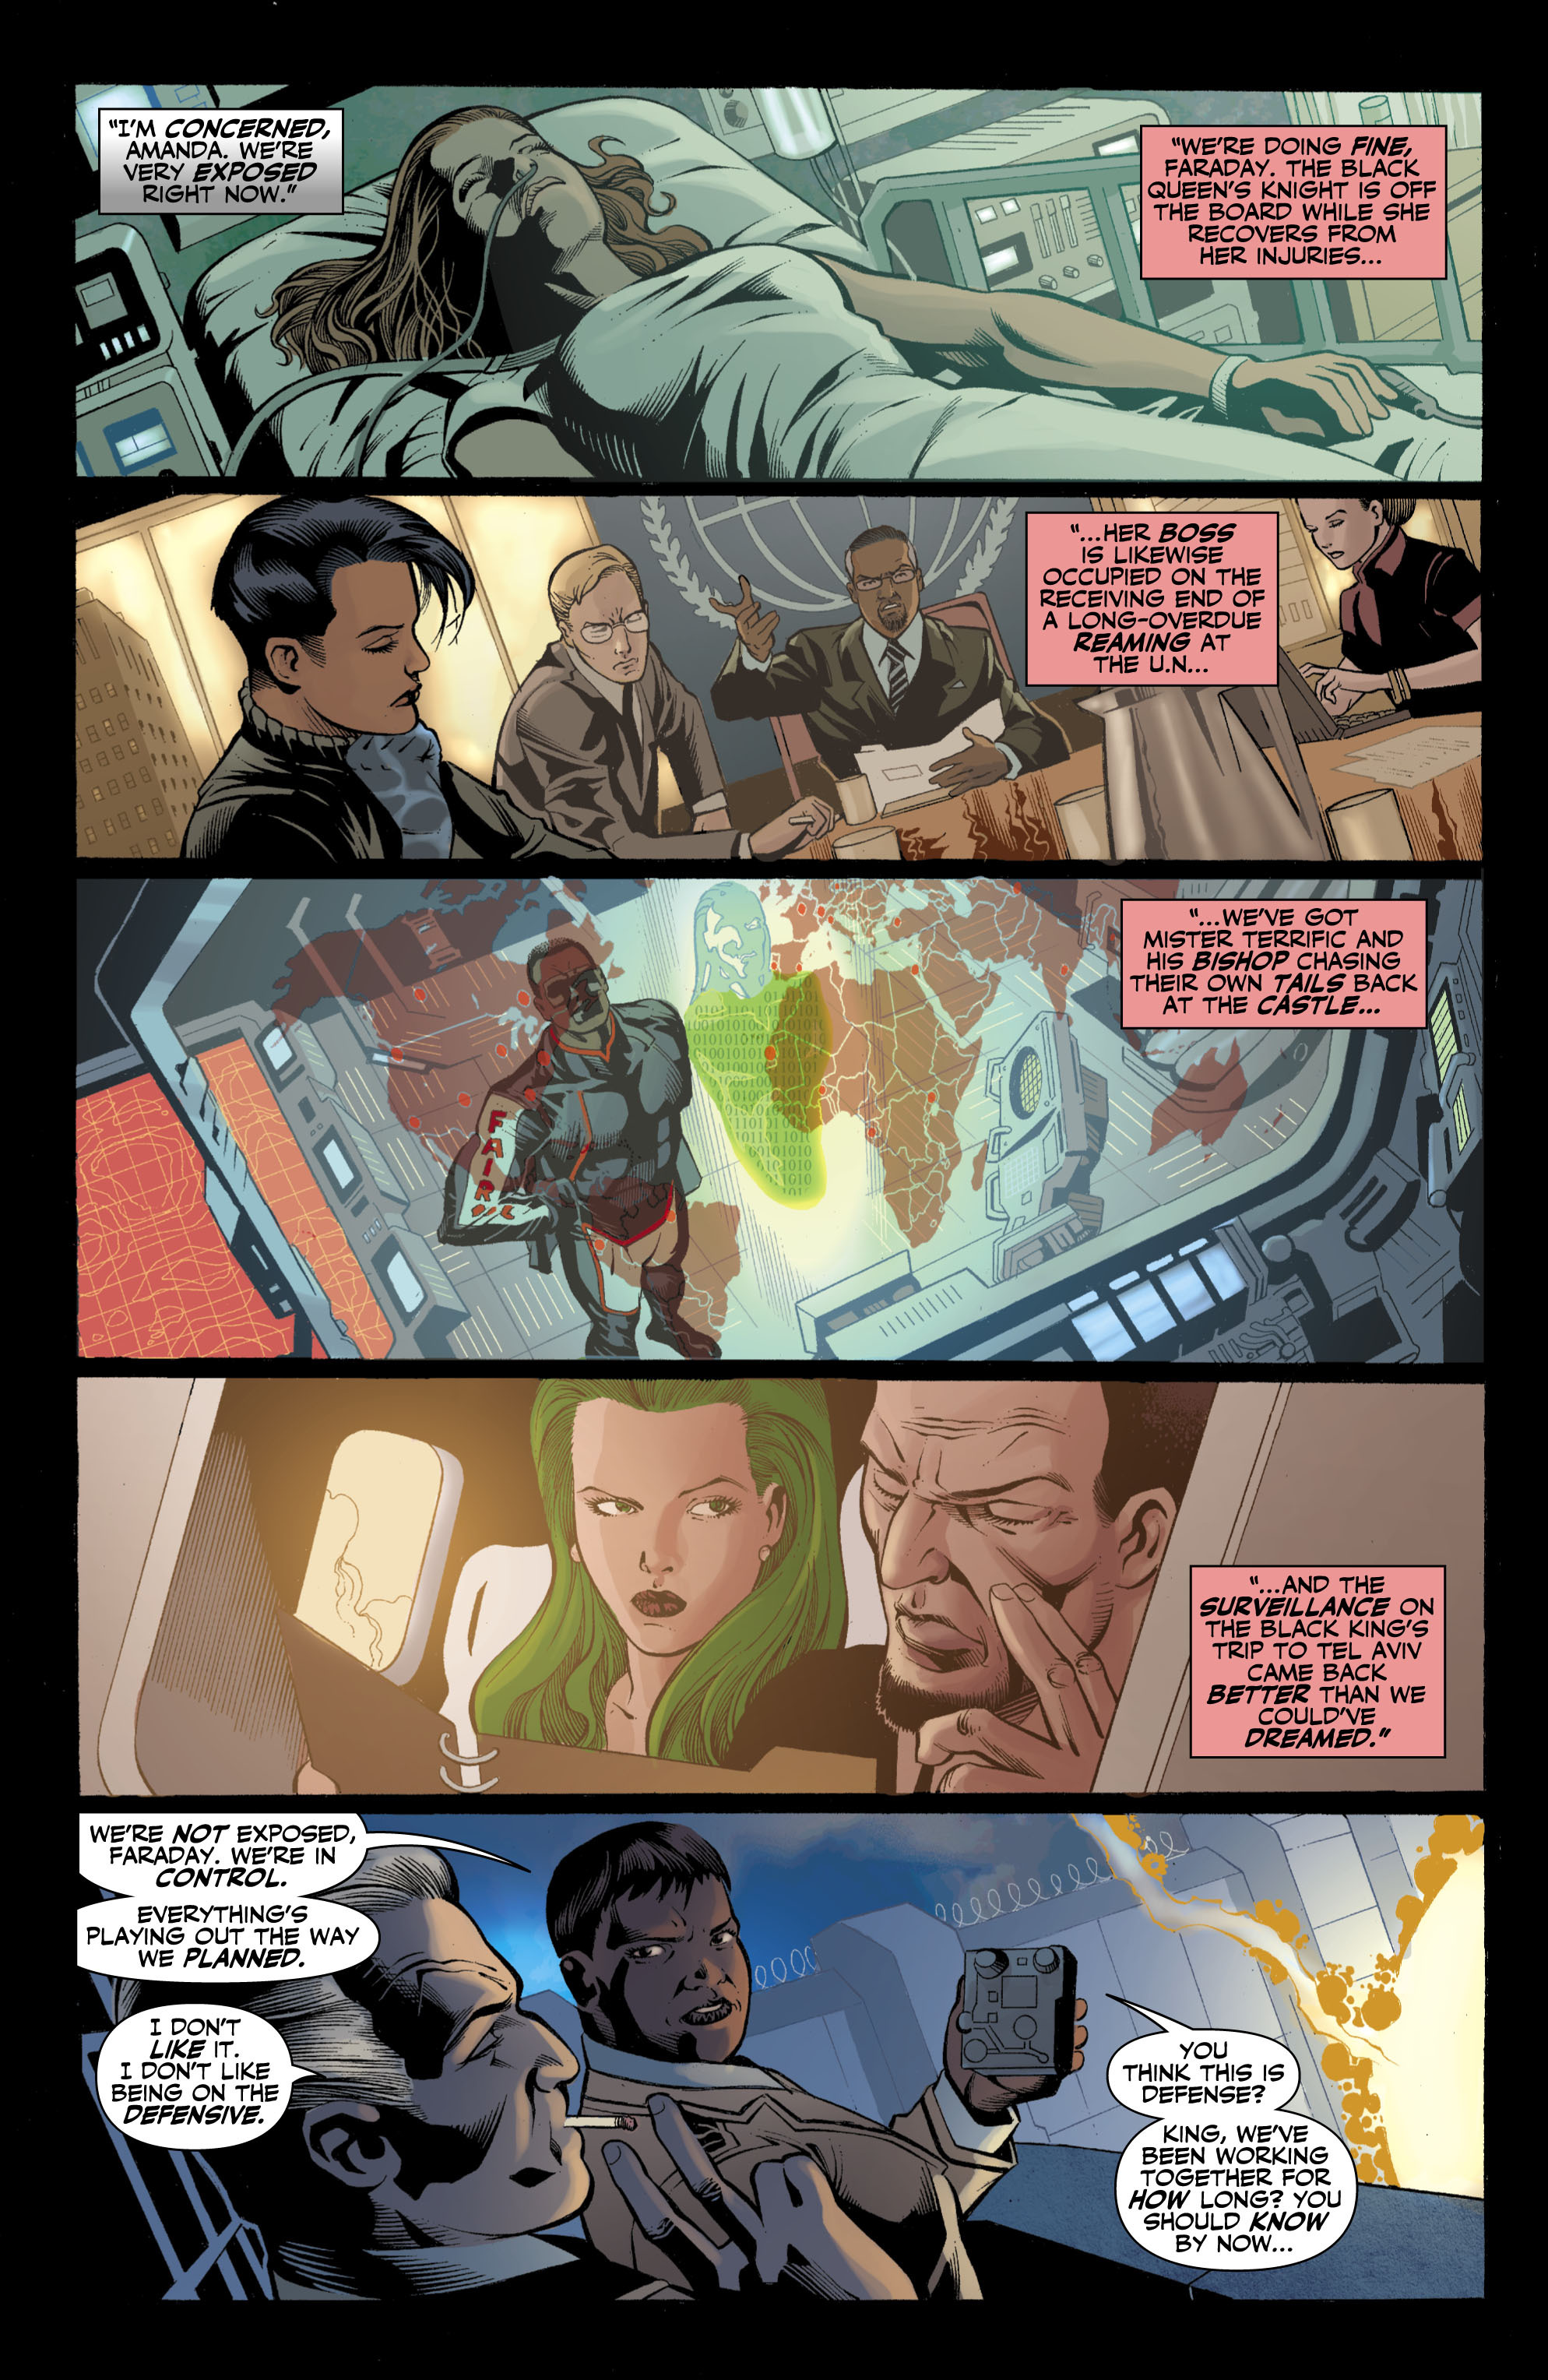 Checkmate (2006) 19 Page 2